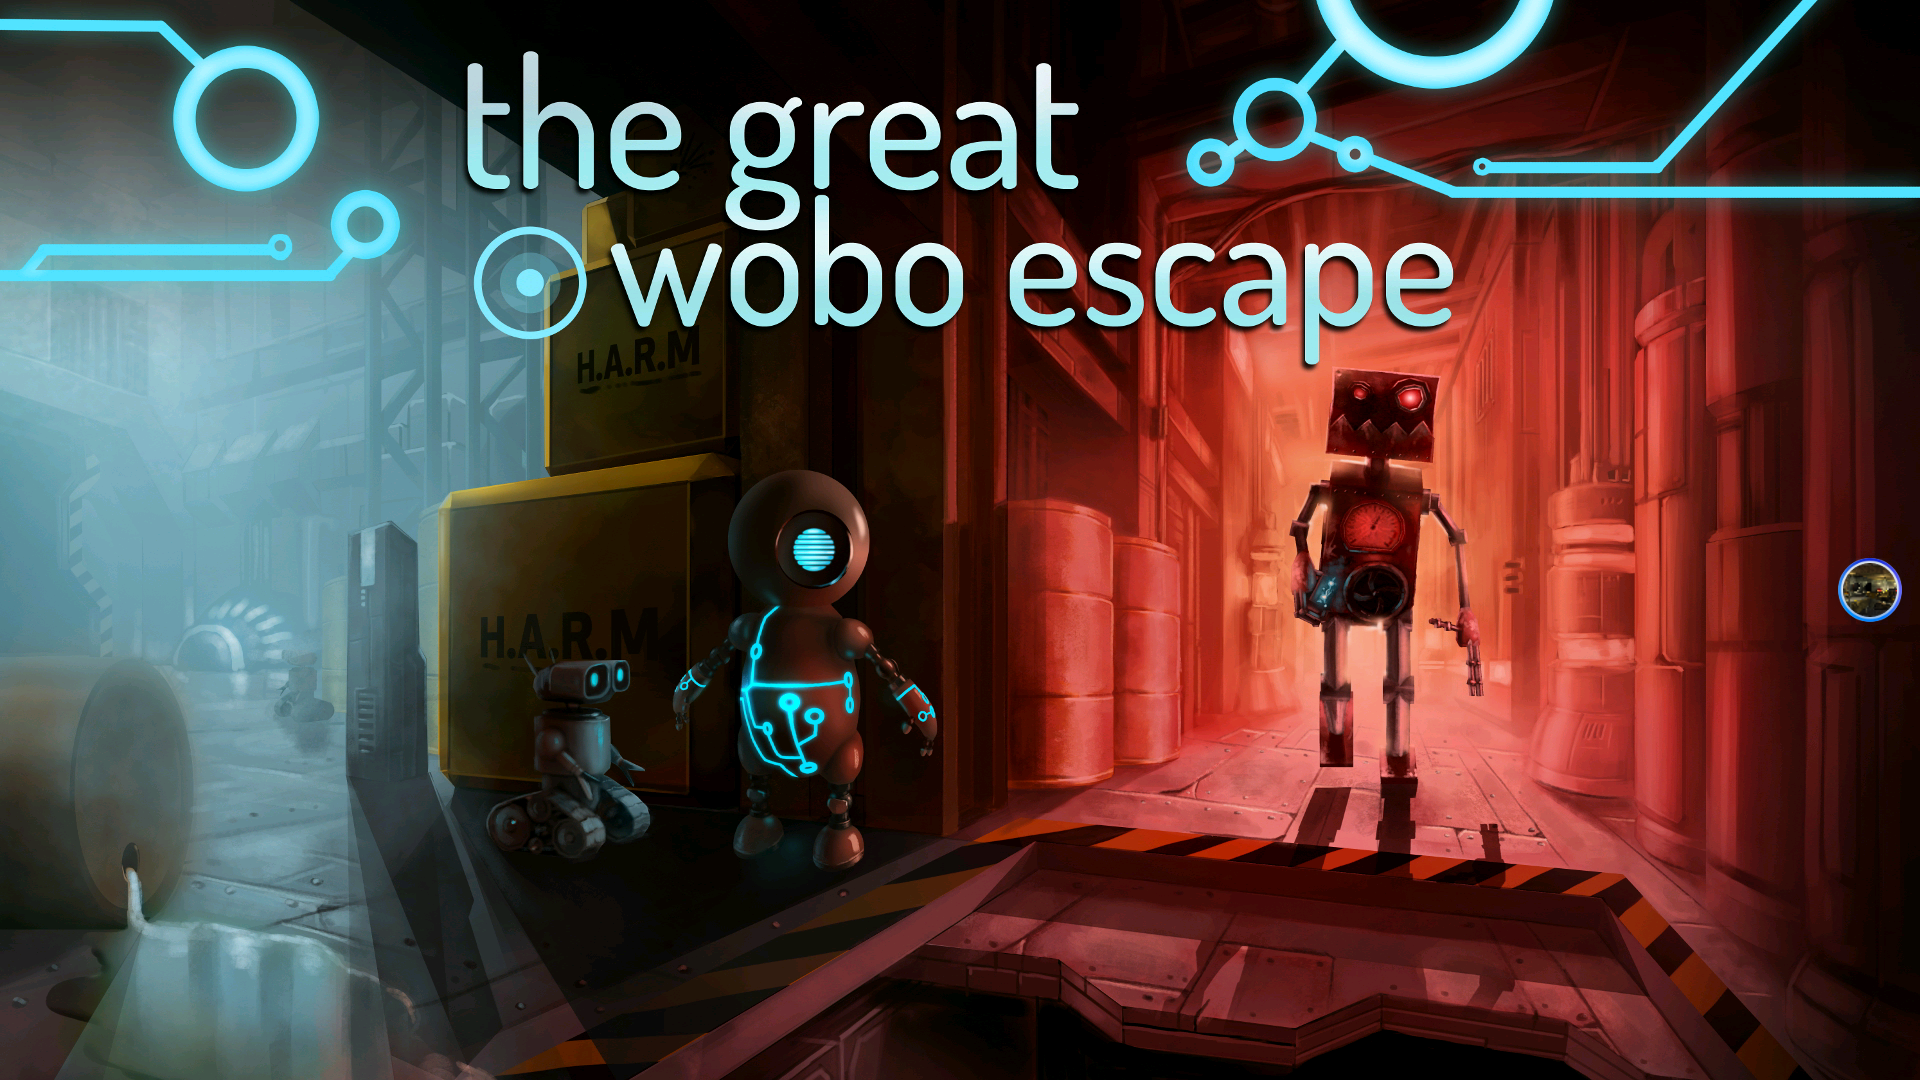 iOS The Great Wobo Escape